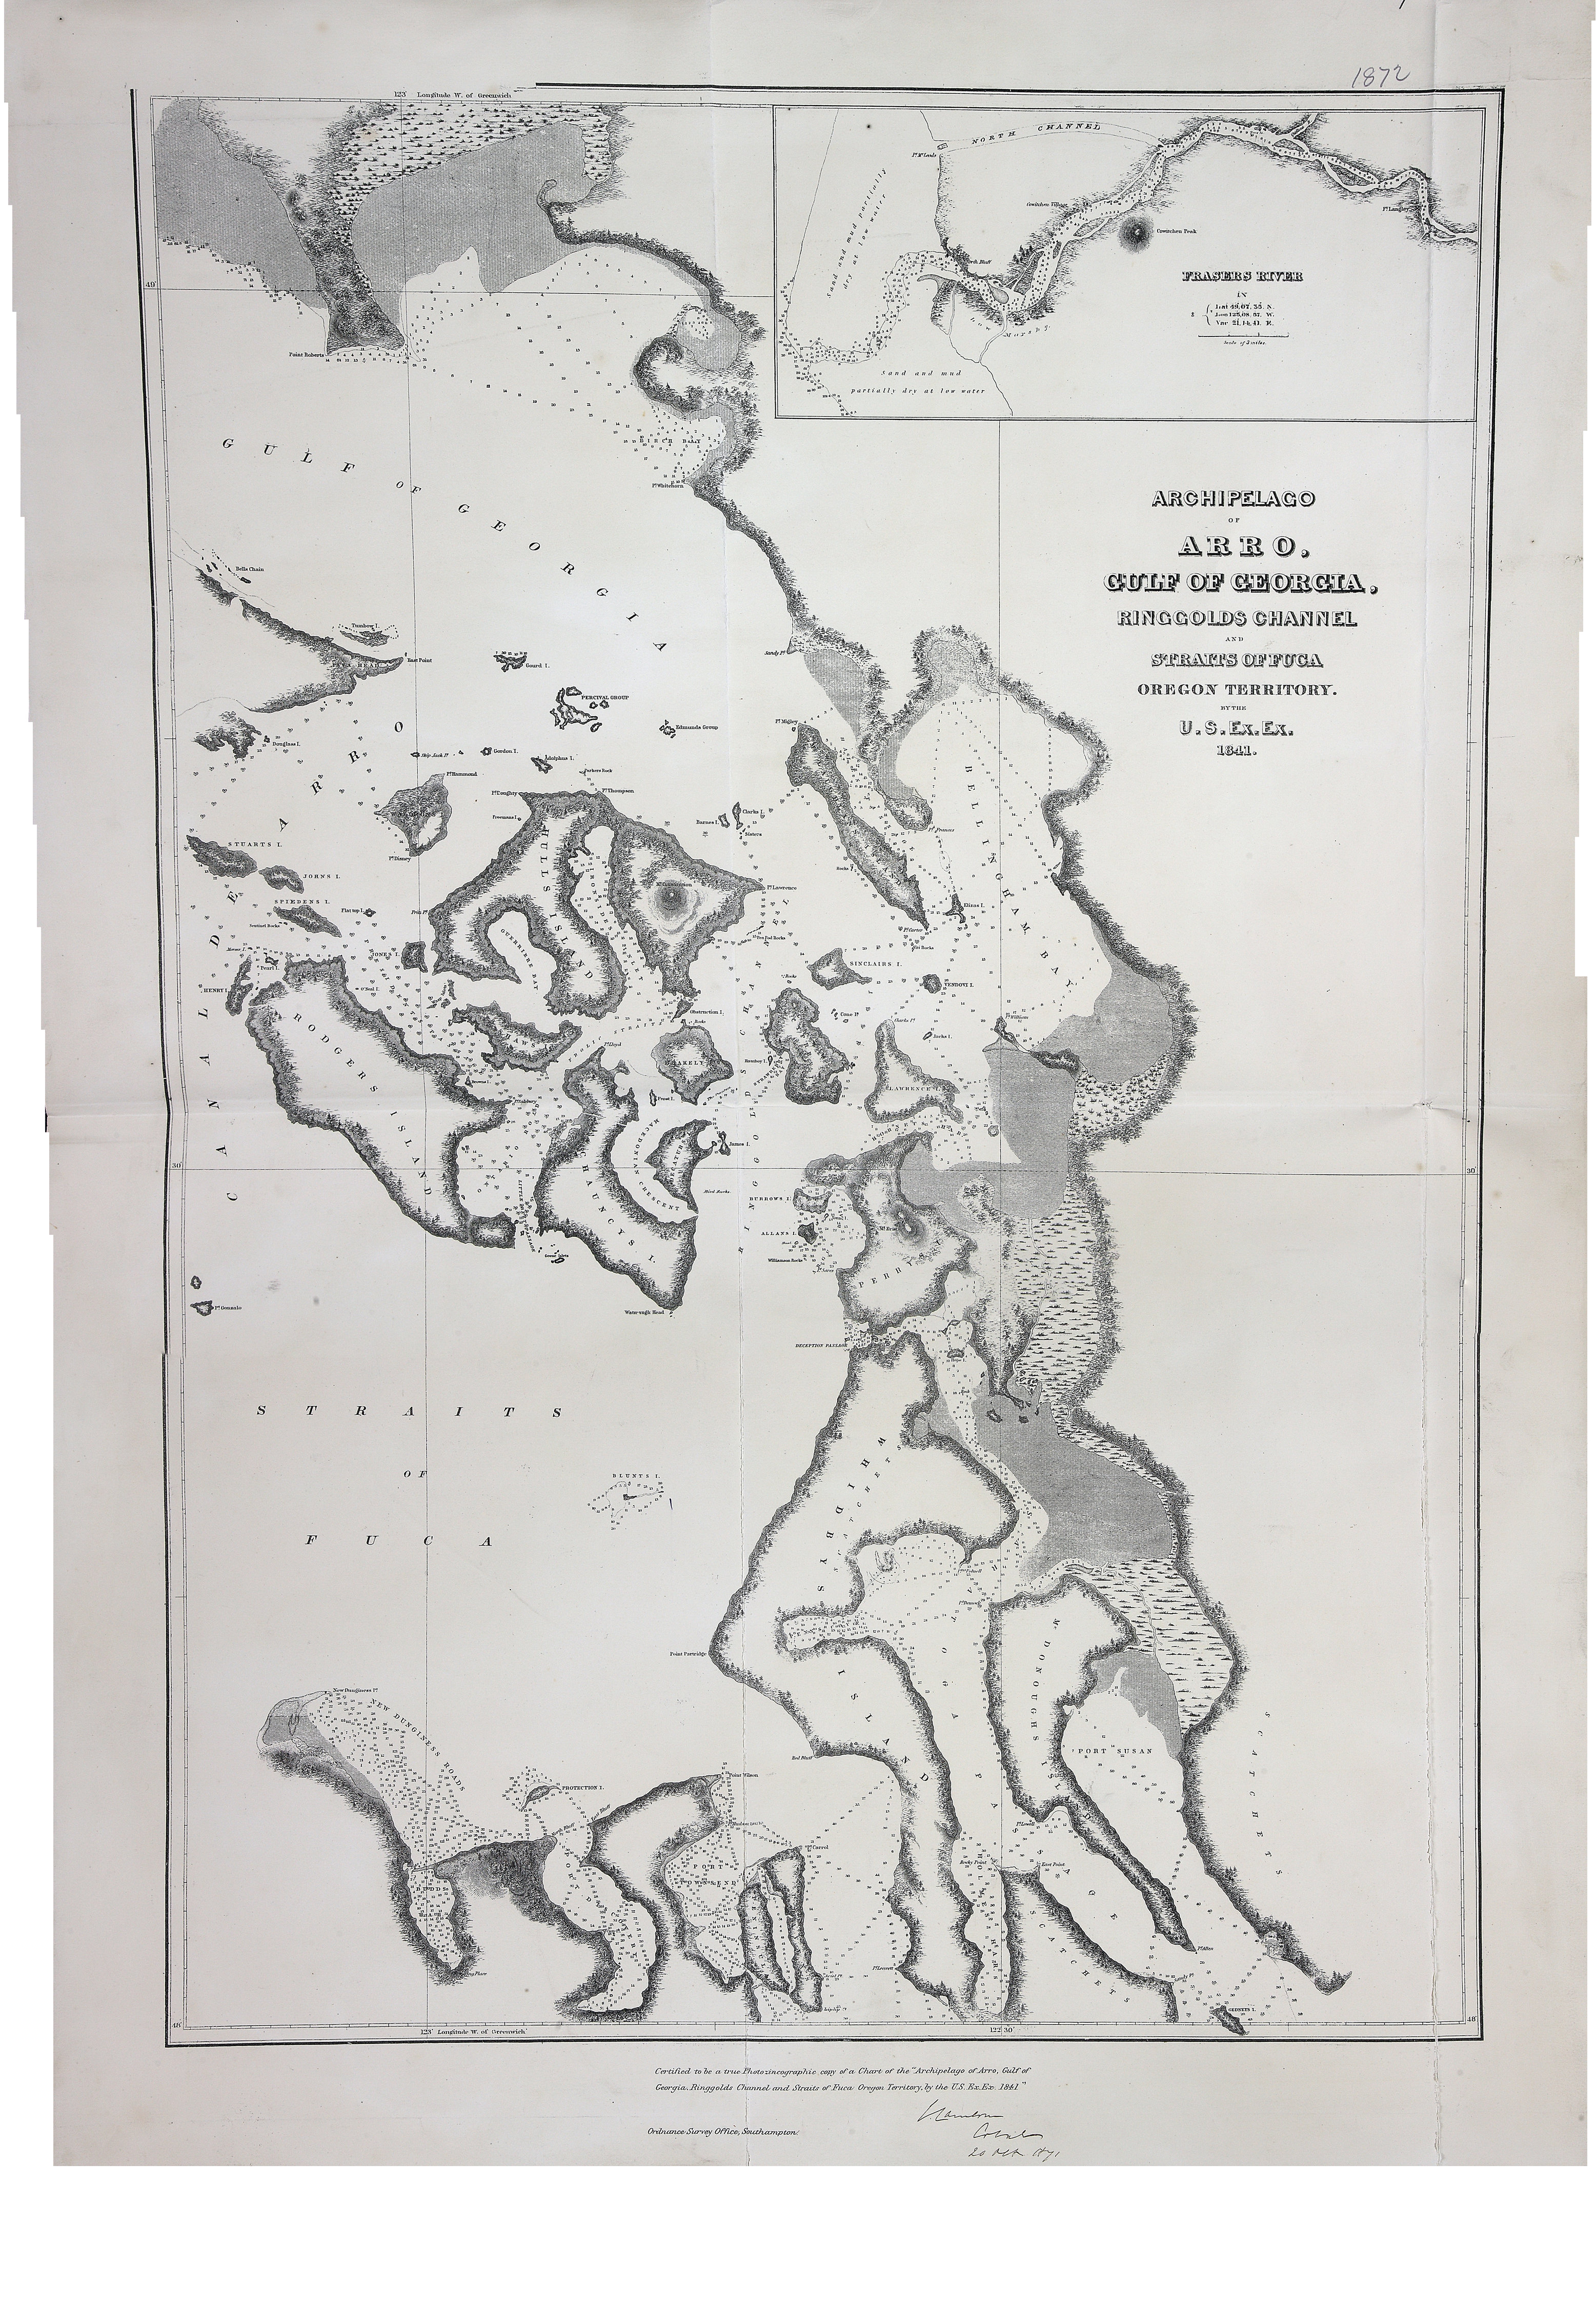 The colonial despatches map gallery archipelago of arro gulf of georgia ringgolds channel and straits of fuca oregon territory publicscrutiny Image collections